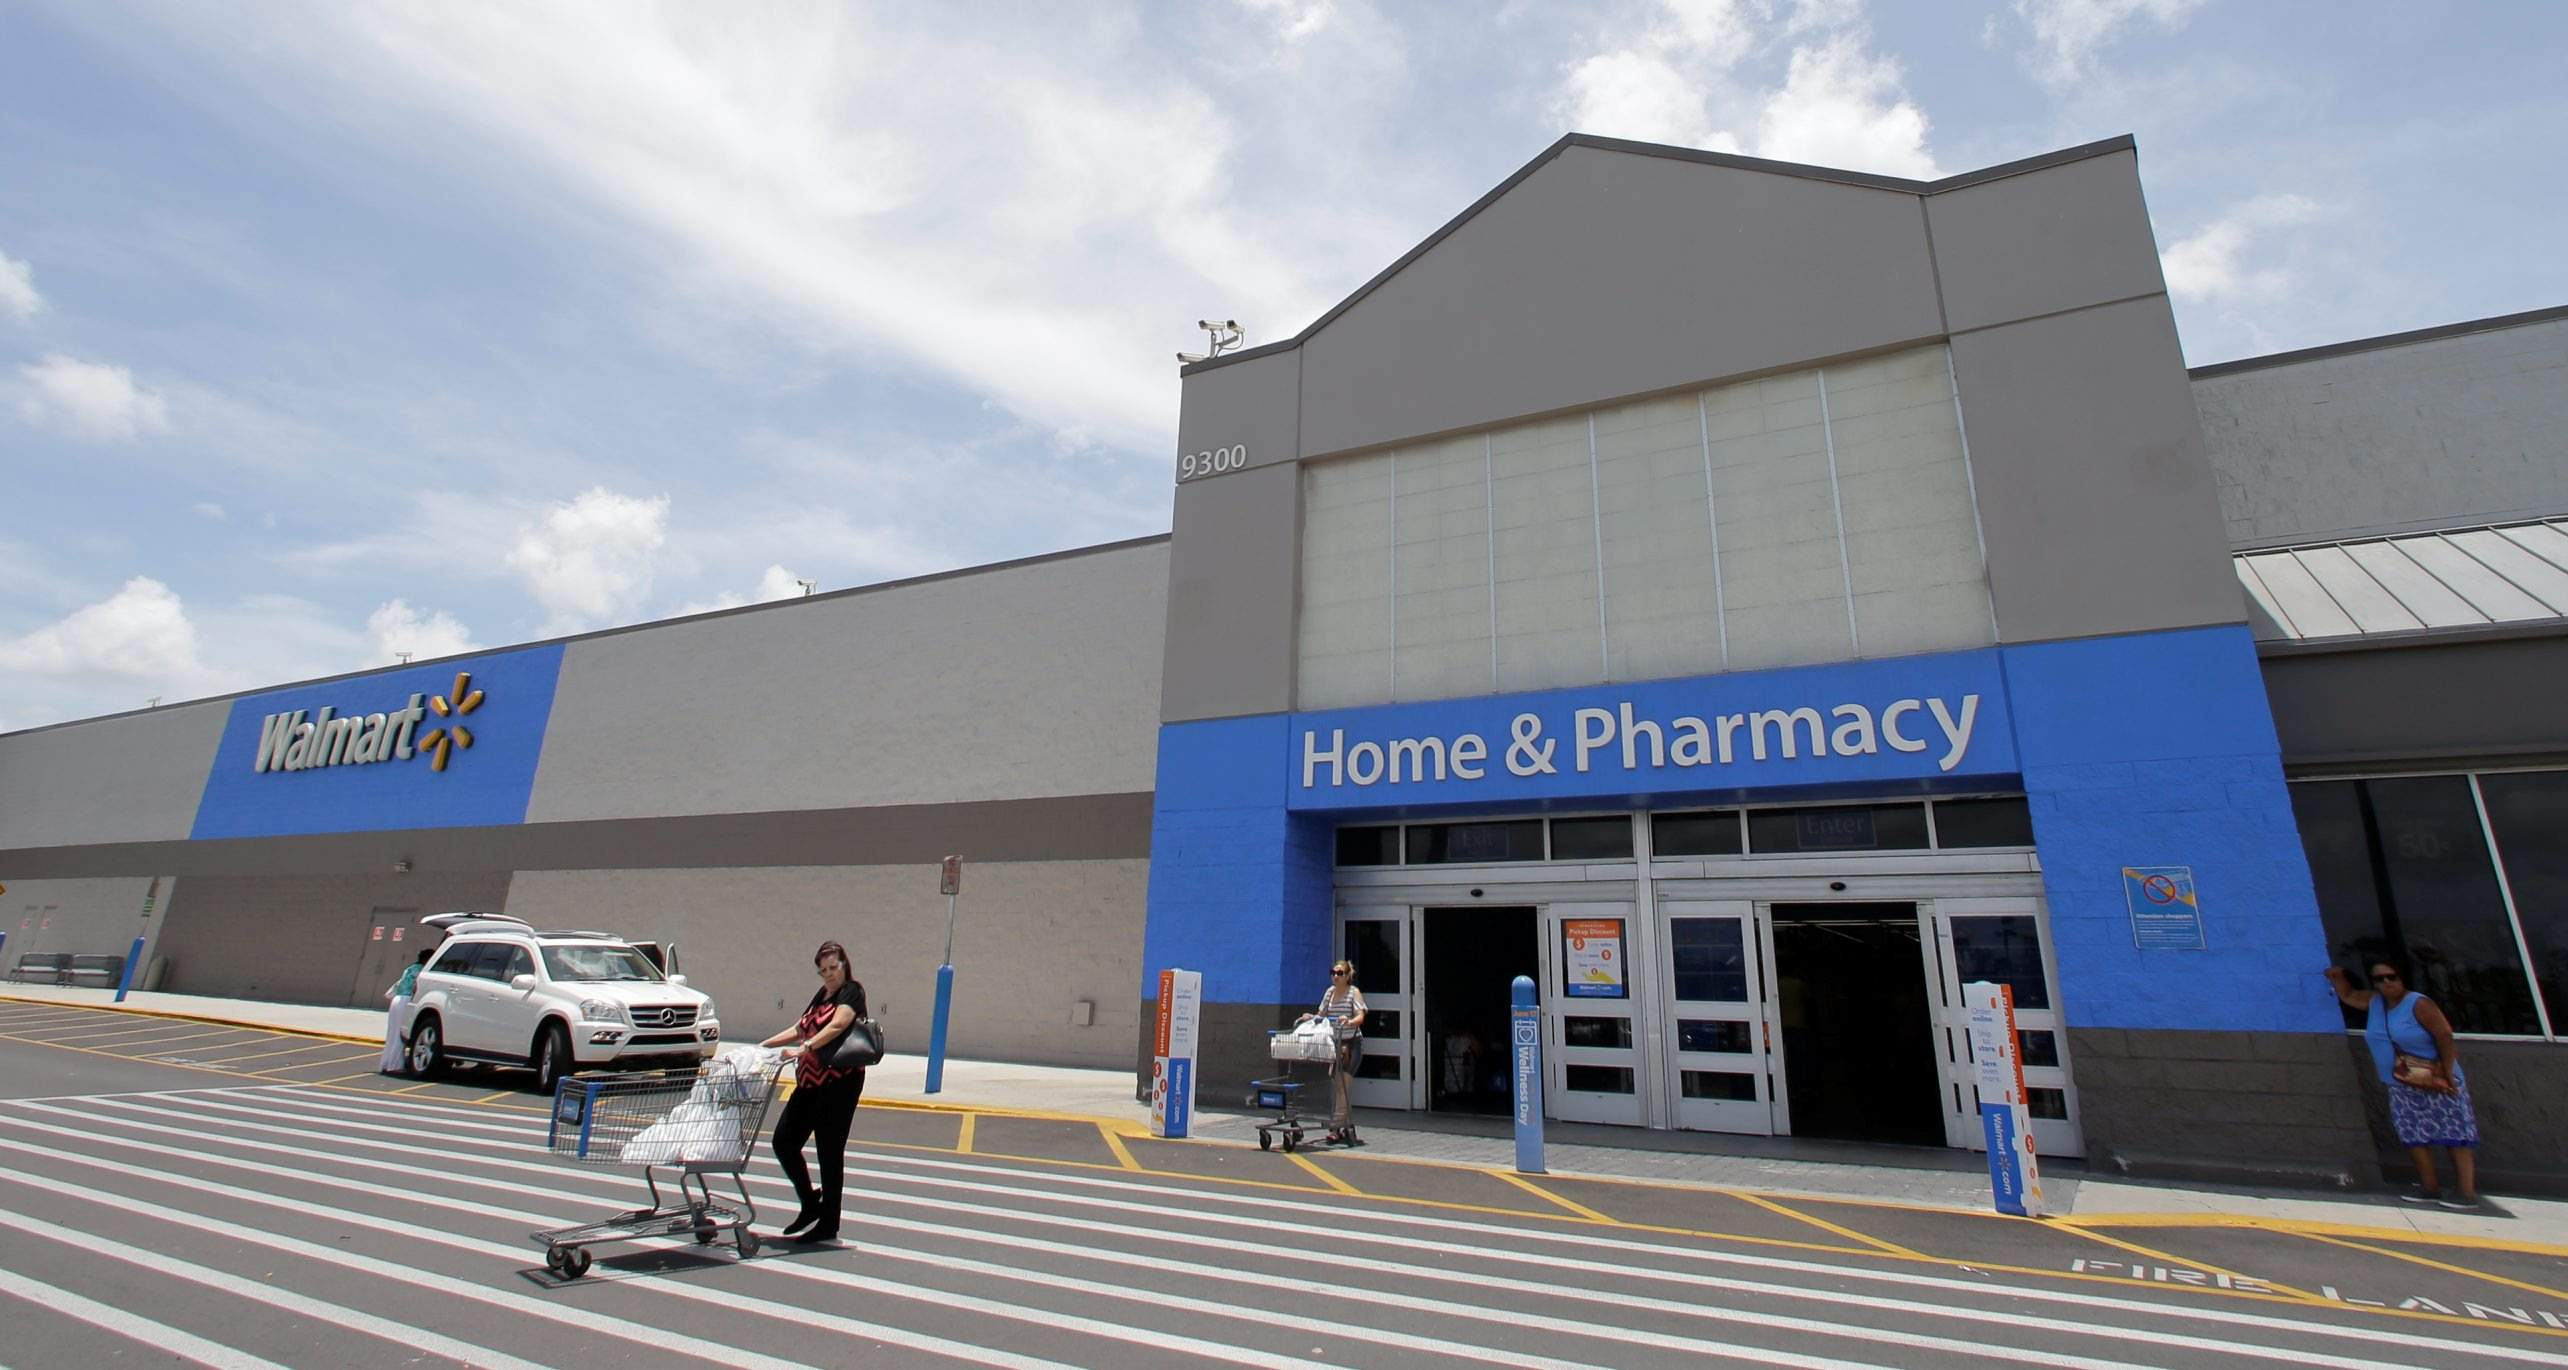 Walmart Fiscal Year 2019 Calendar With Sees The Future And It Is Digital